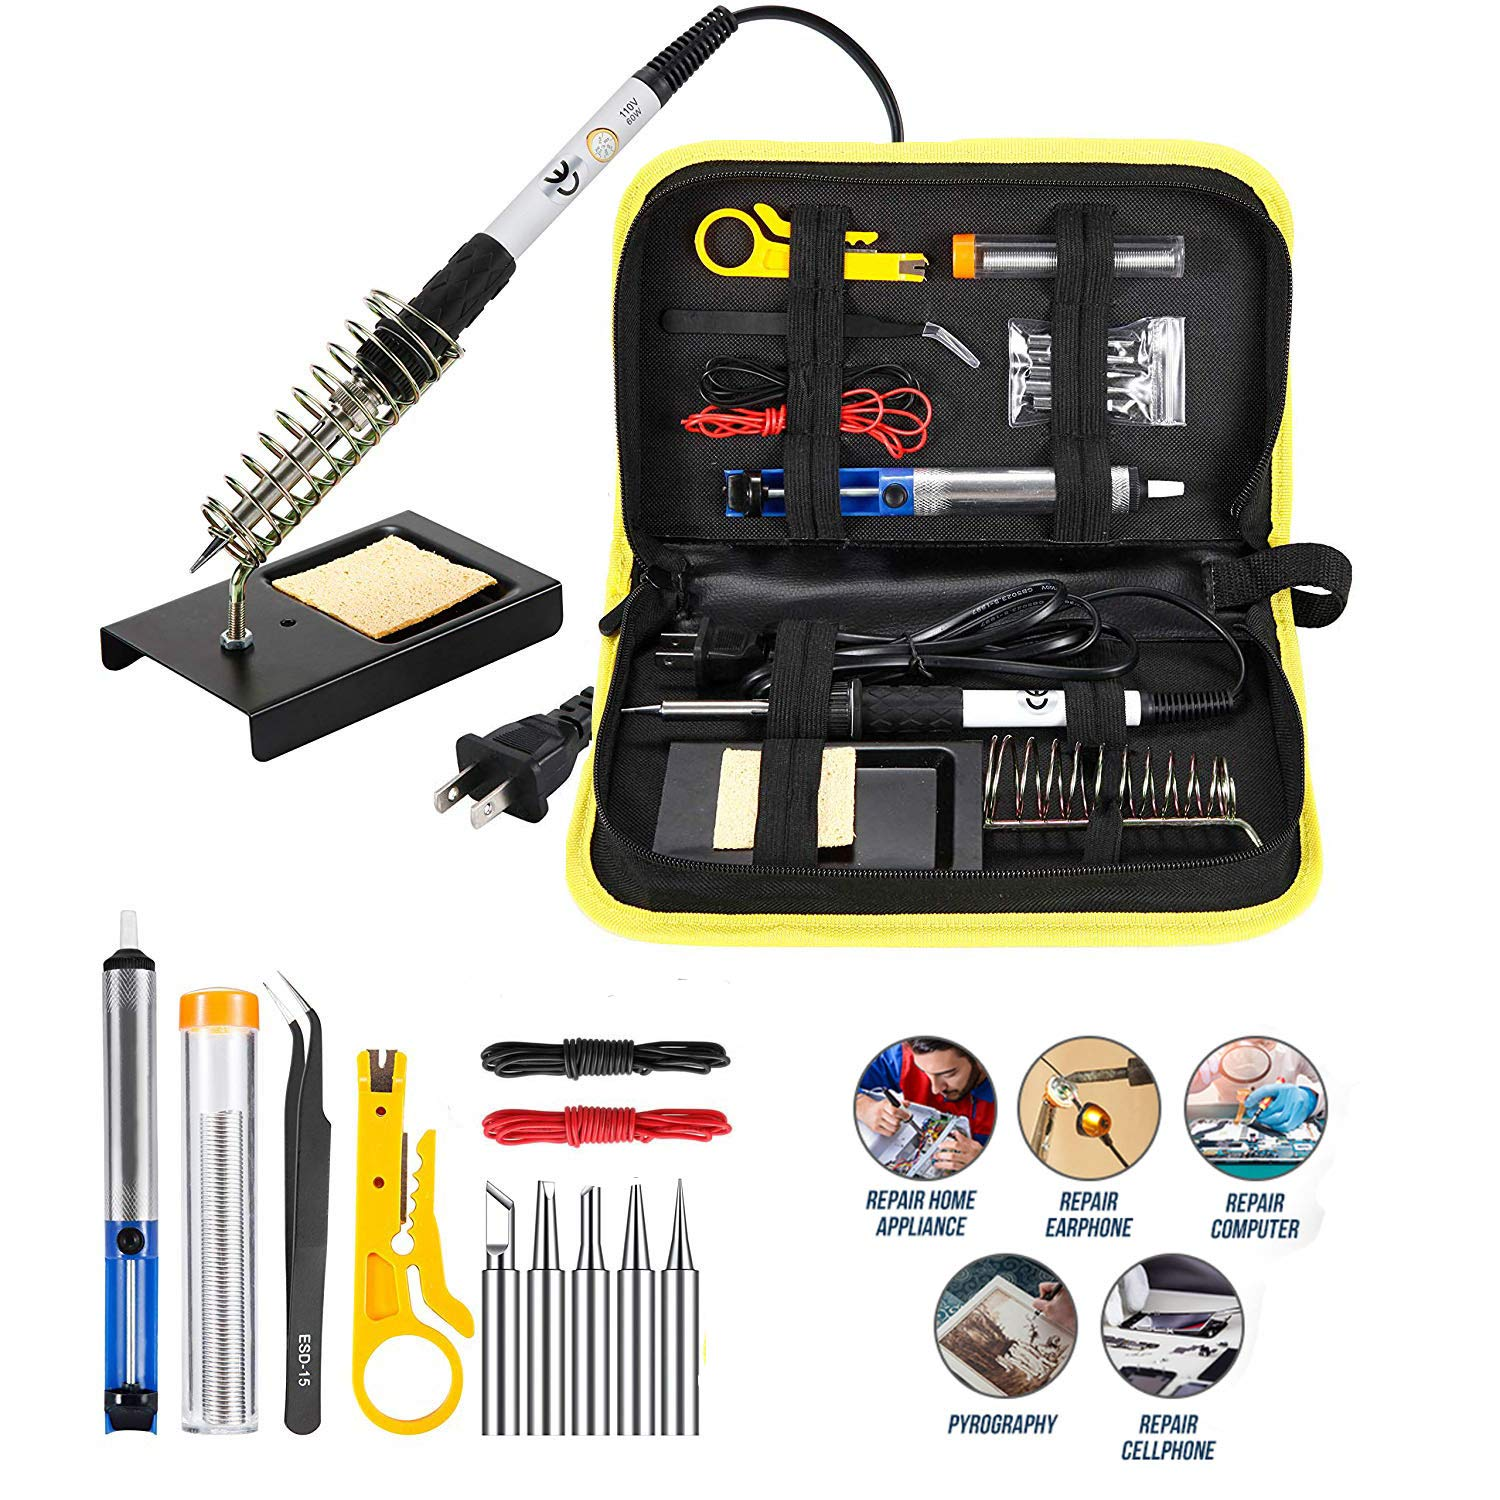 Magento's Superb 14 Pieces Set Adjustable Temperature Soldering Iron Gun Kit 60w 110v Best for Small Electric Work and Welding. 5 Bonus Tips in Various Sizes Bonus Solder Wire Stand .